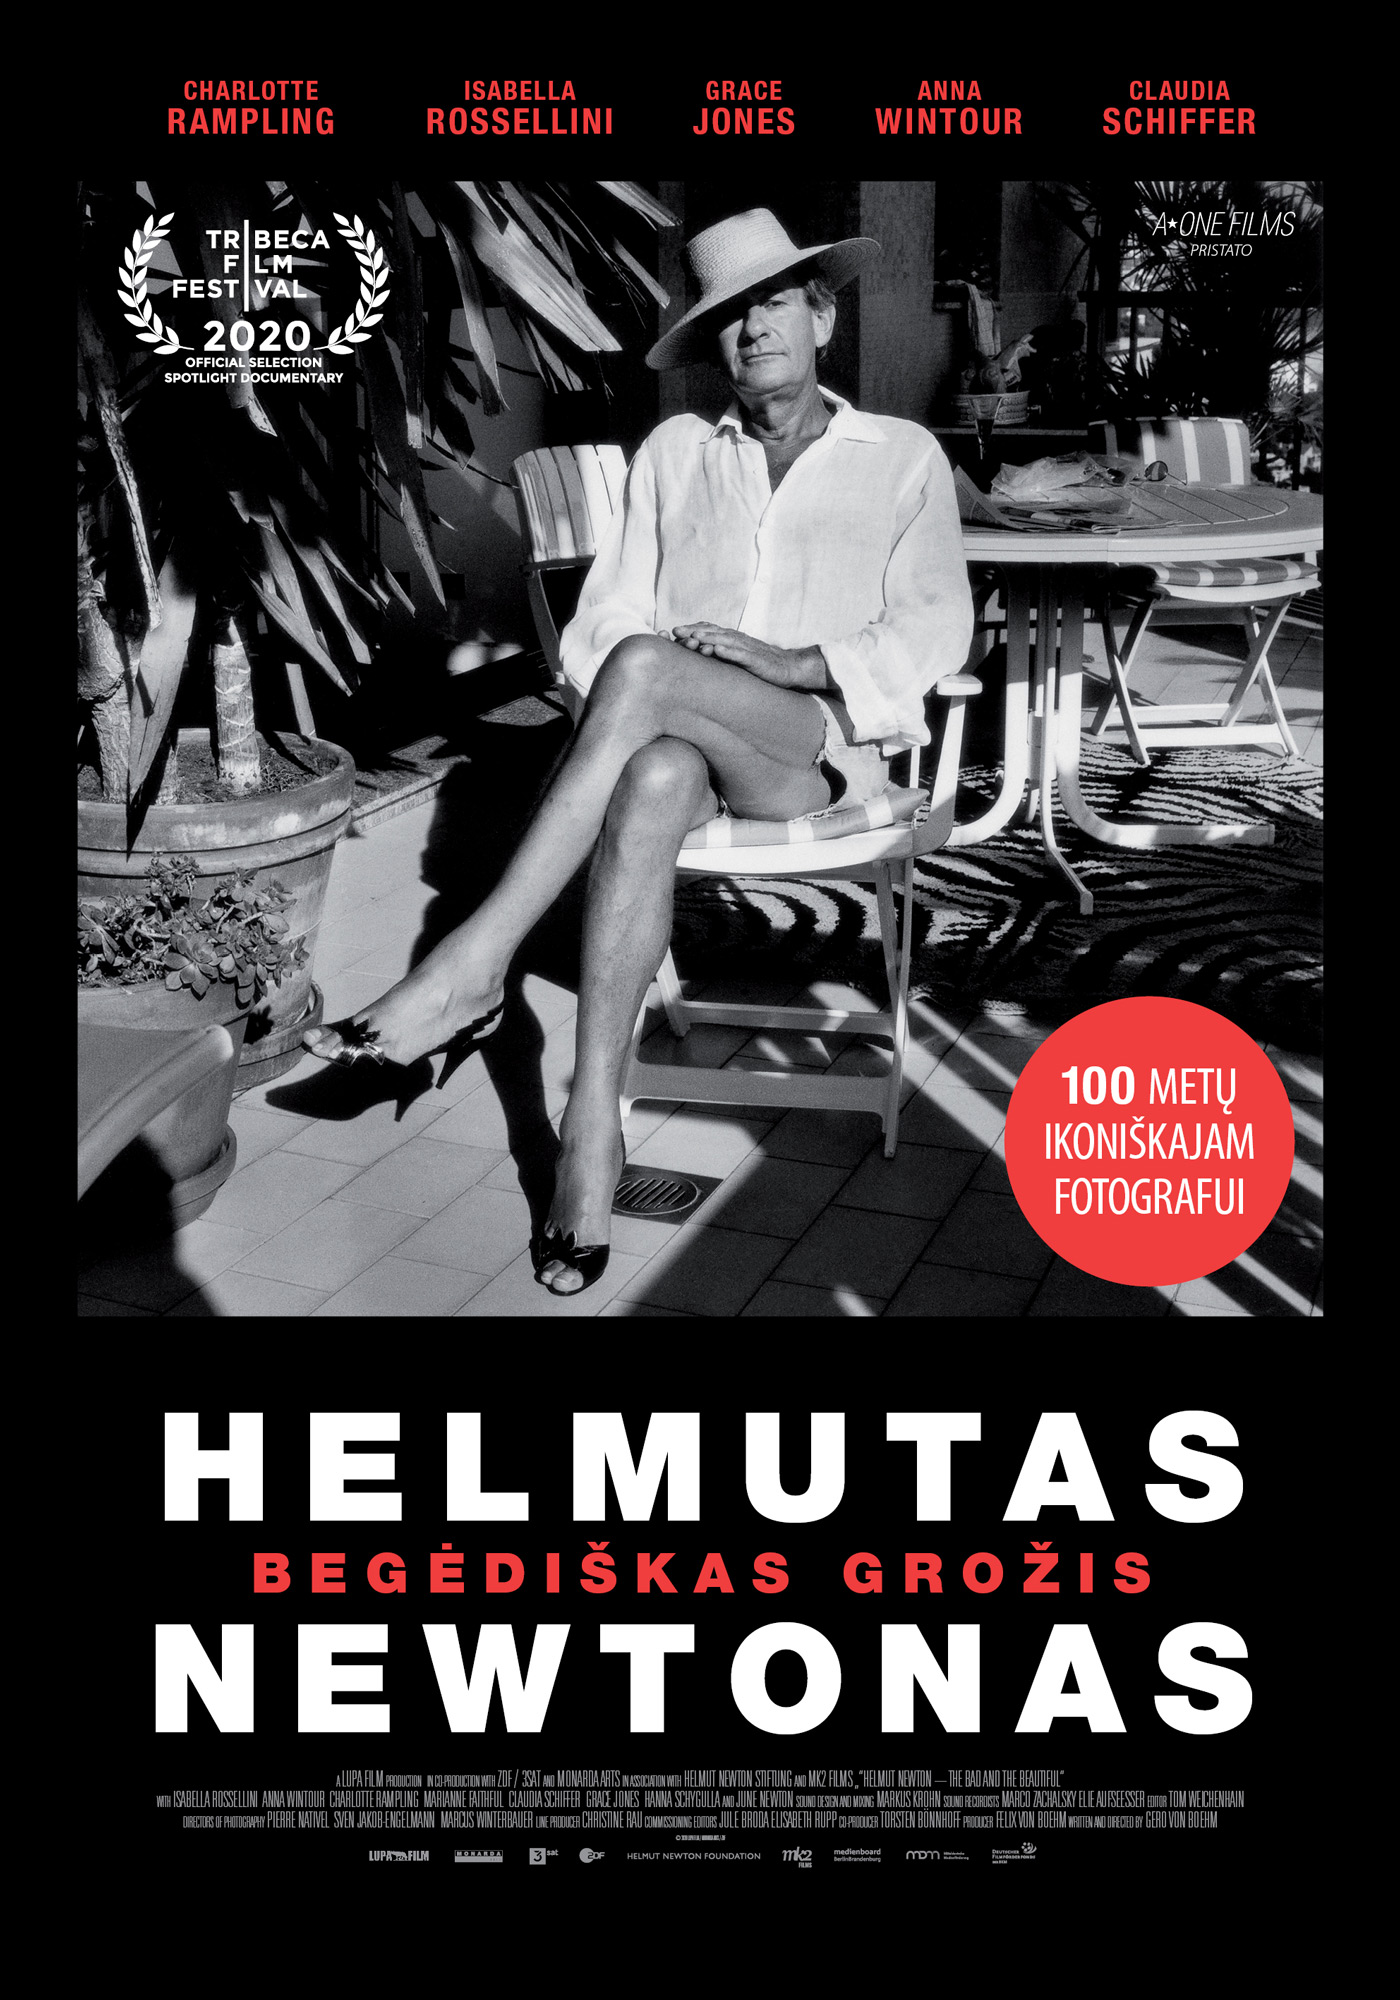 Helmut Newton: begėdiškas grožis (Helmut Newton: The Bad and the Beautiful)